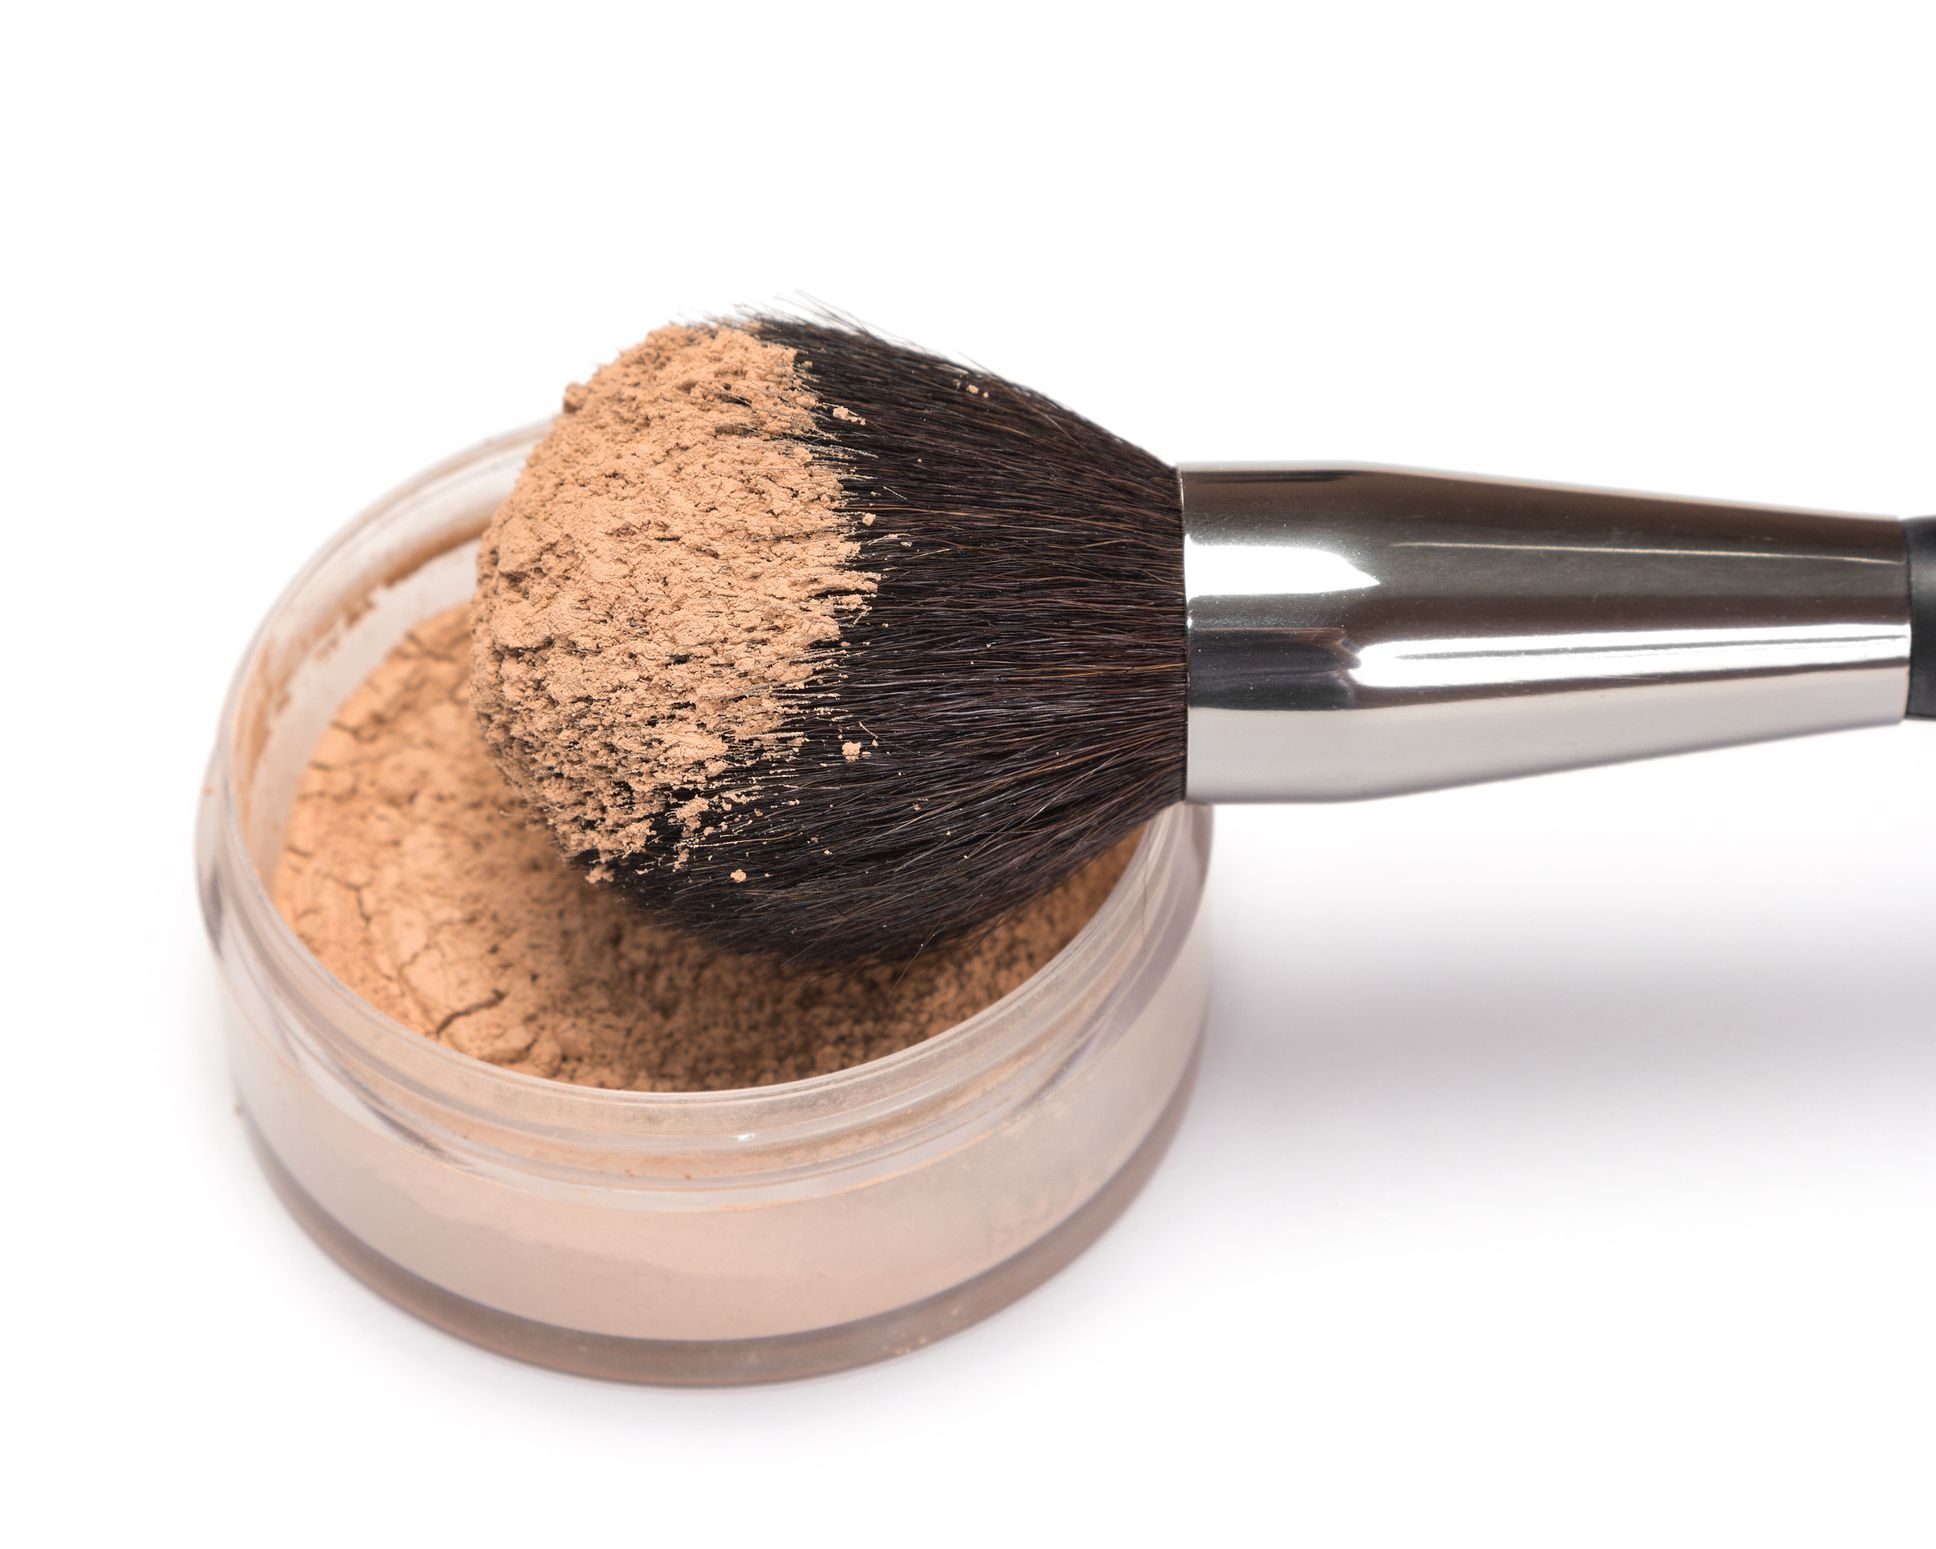 The 8 Best Finishing Powders That Blur the Skin Without